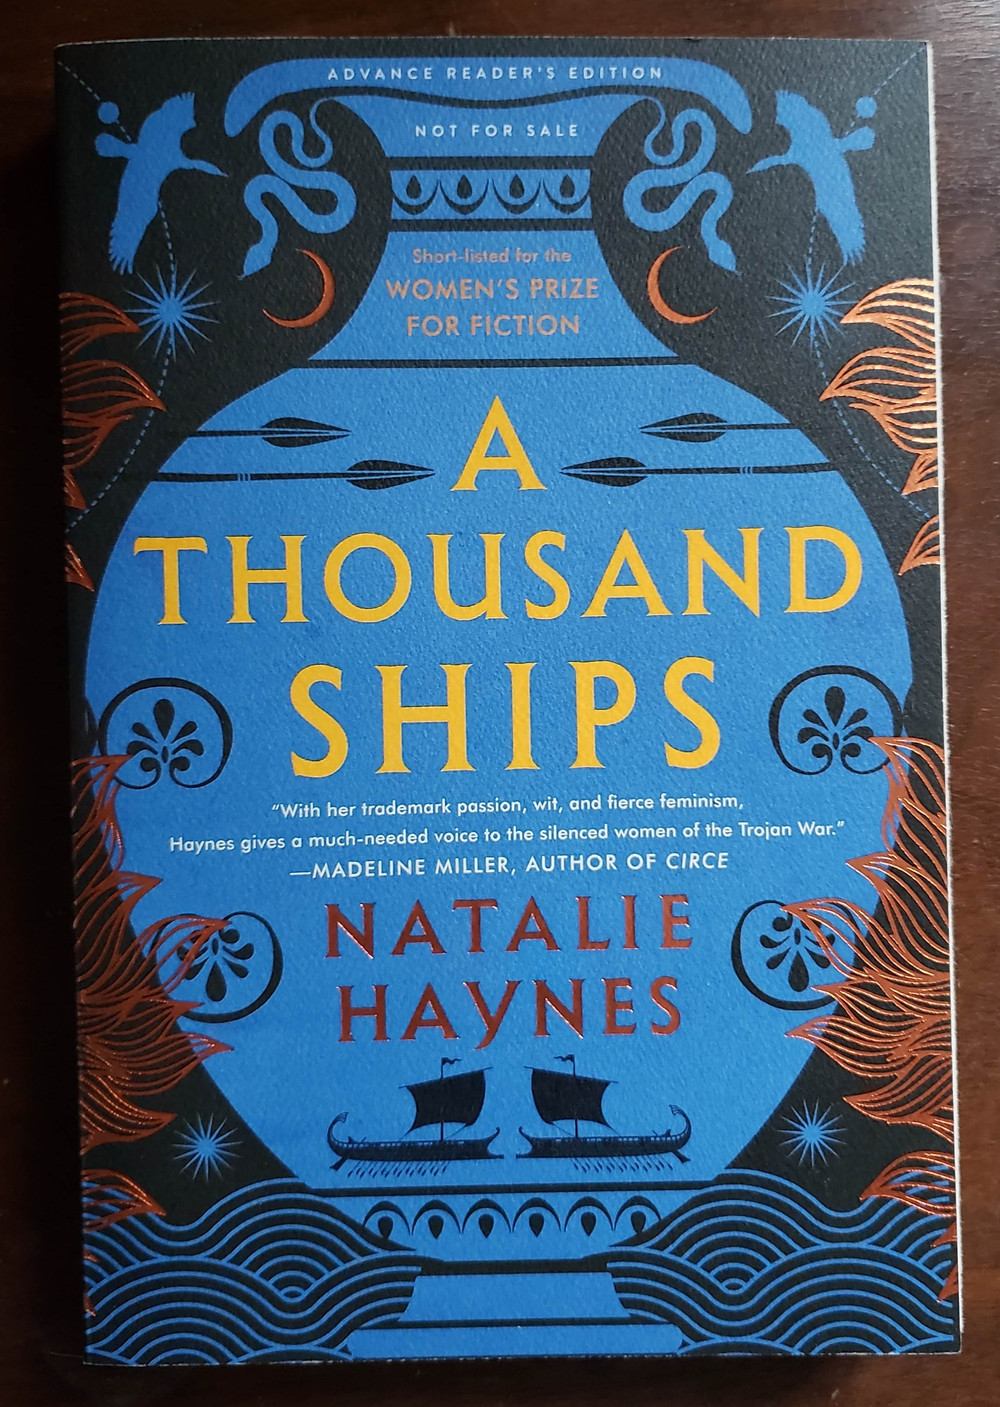 Front cover of the book A Thousand Ships by Natalie Haynes.